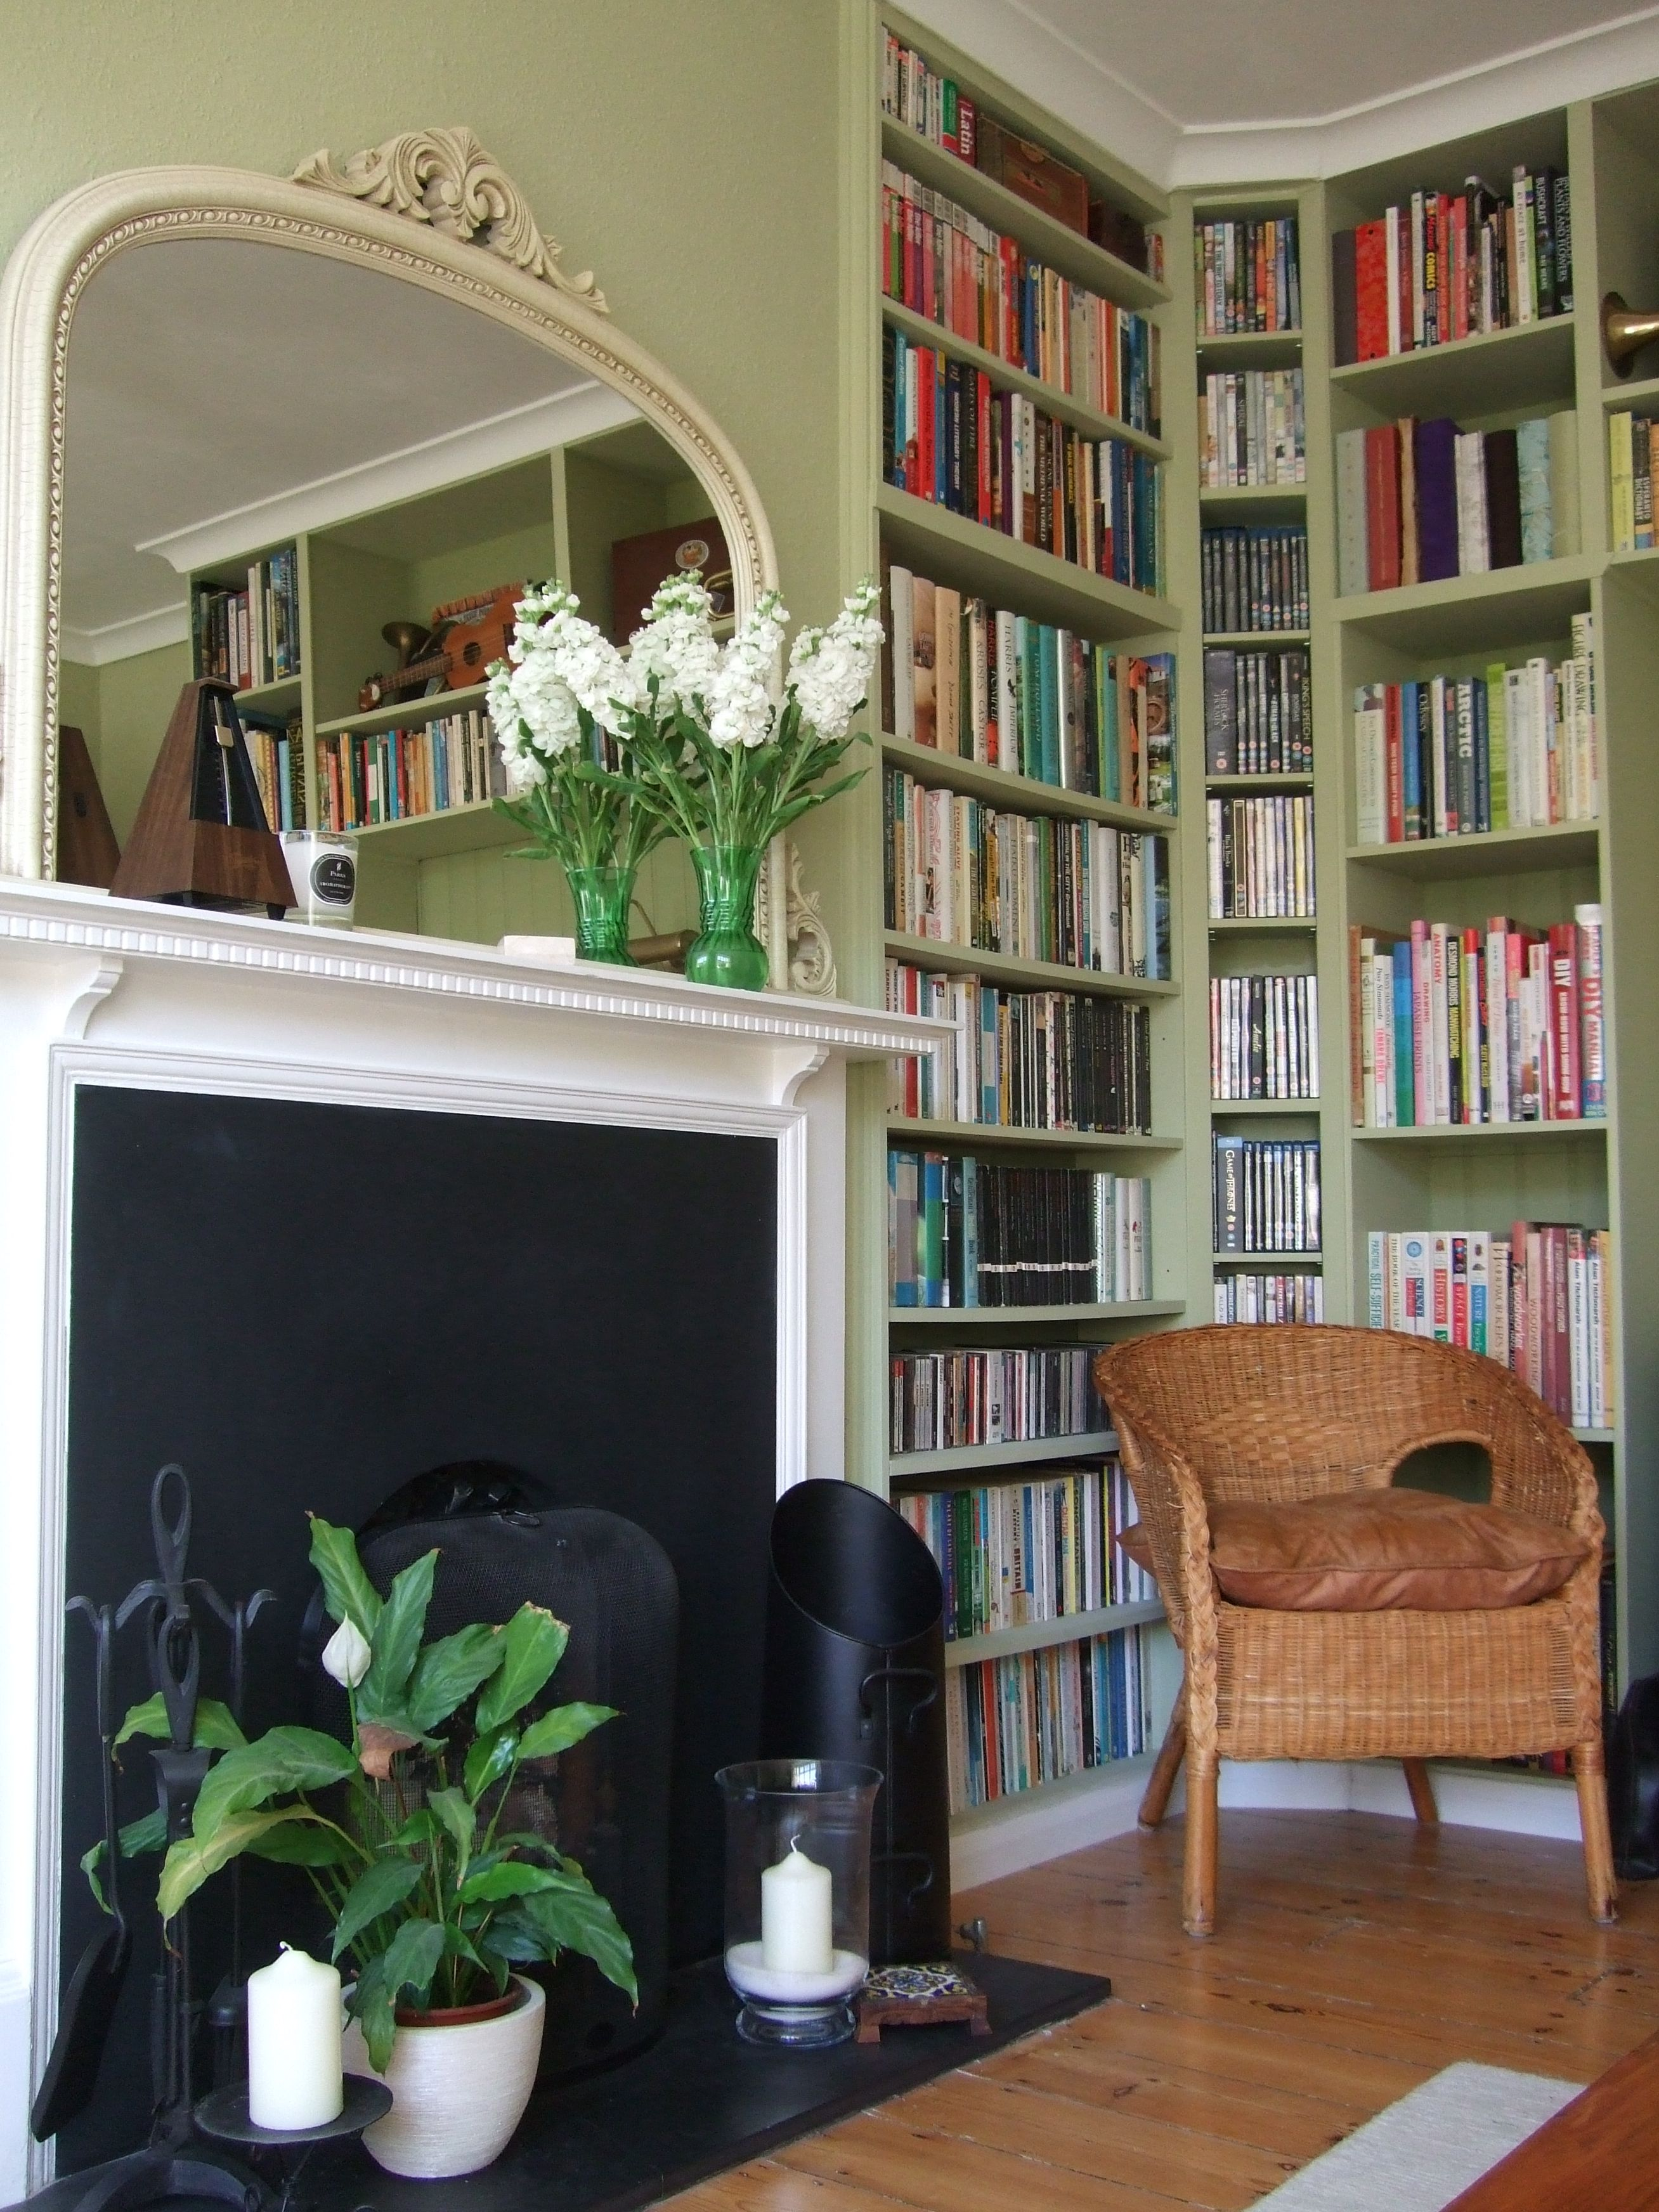 Diy Fitted Bookshelves In Our Lounge Using Maine Modular Shelf